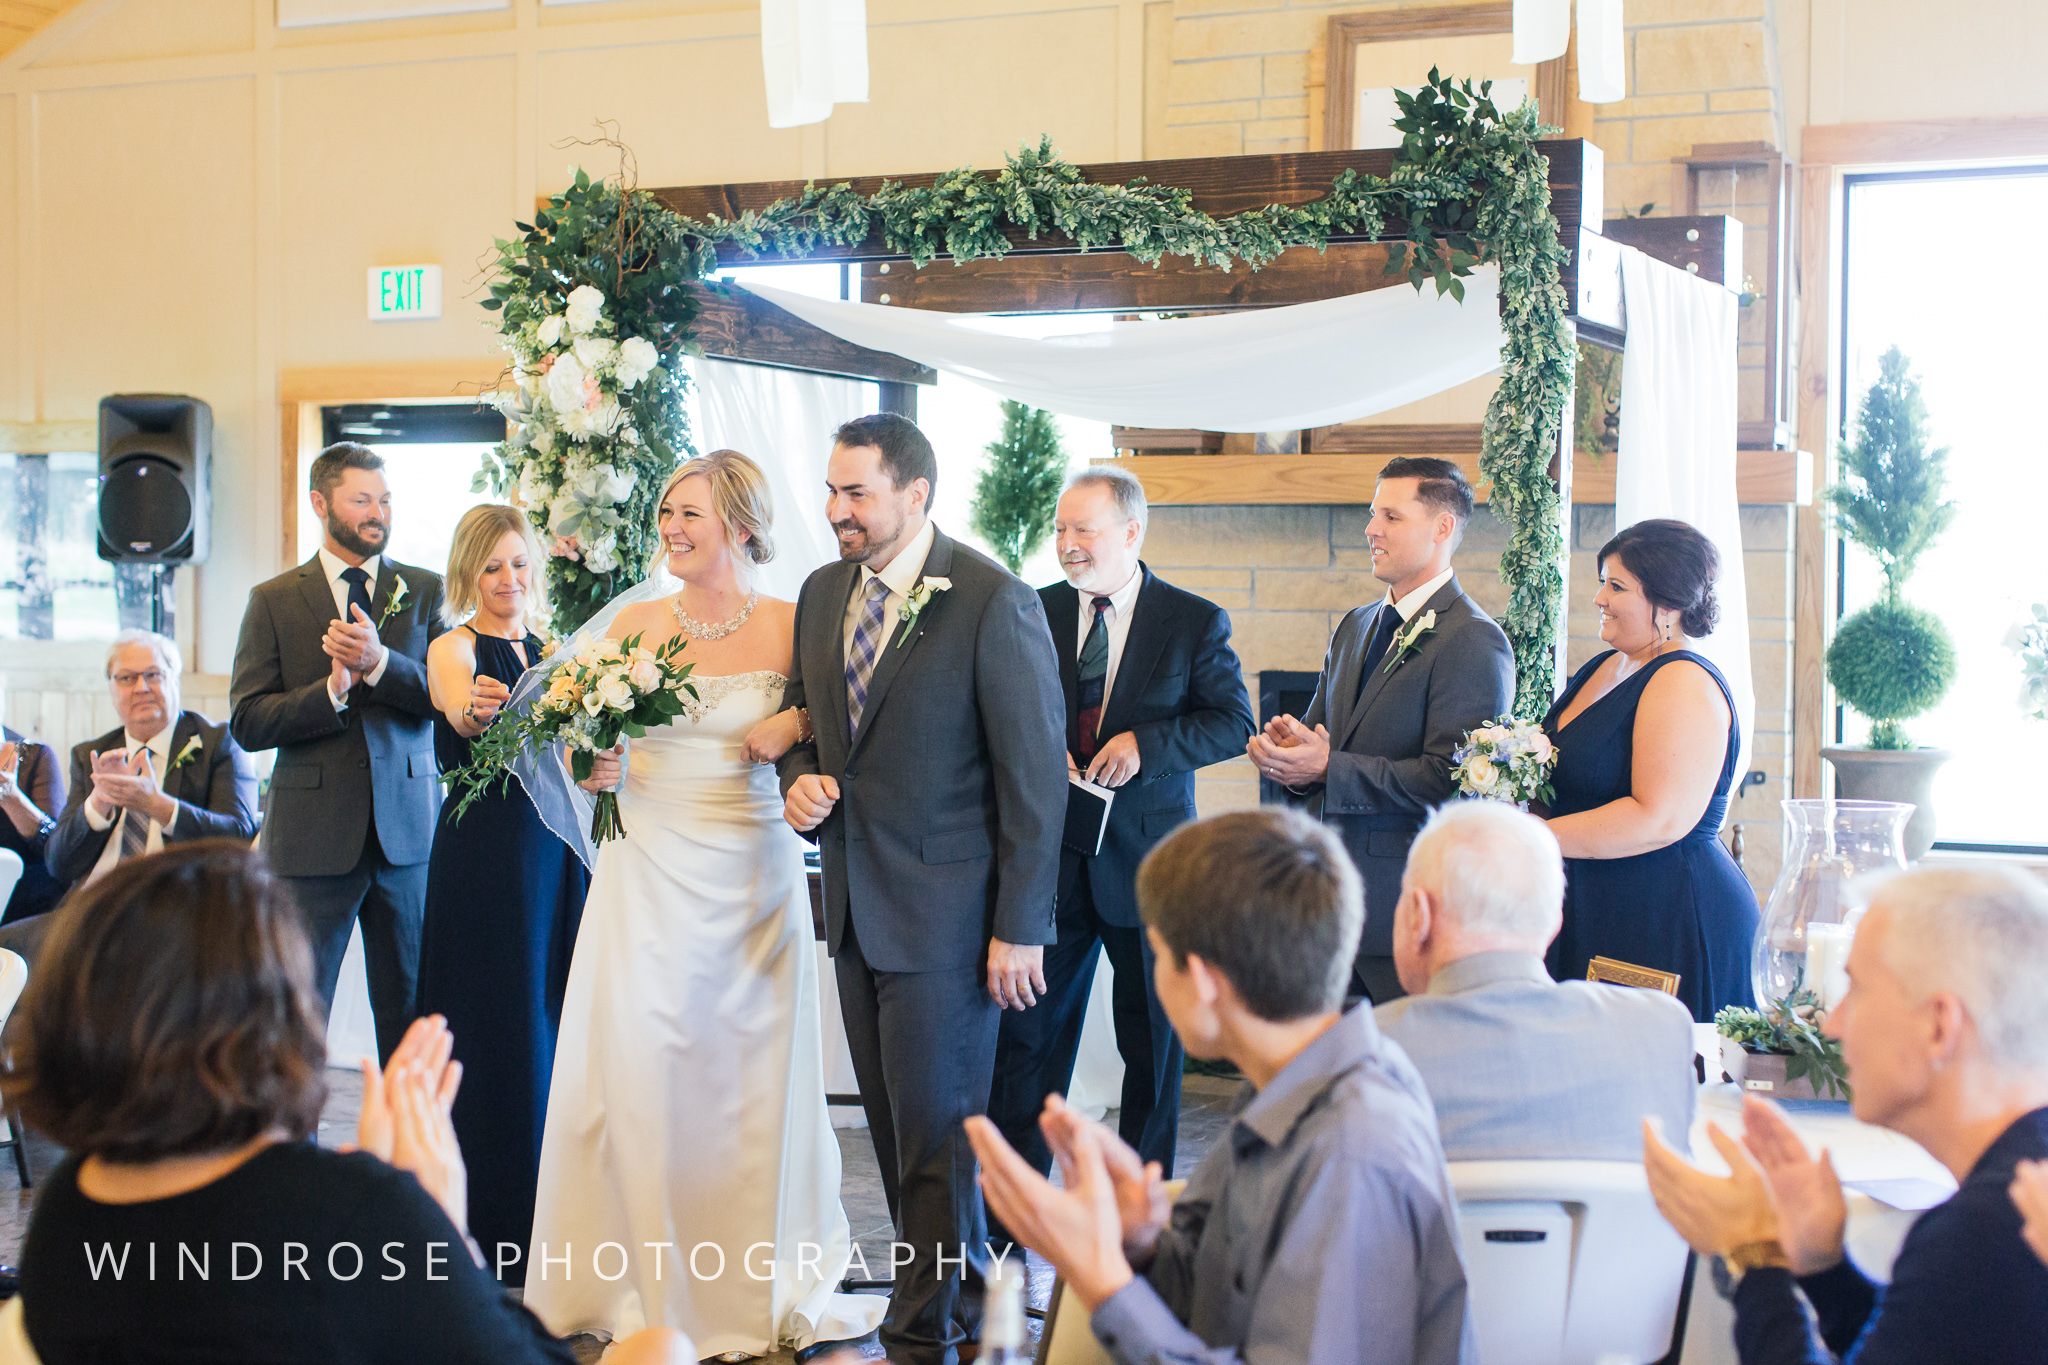 Albert-Lea-Edgewater-Bay-Pavilion-Minnesota-Wedding-Photographer-28.jpg